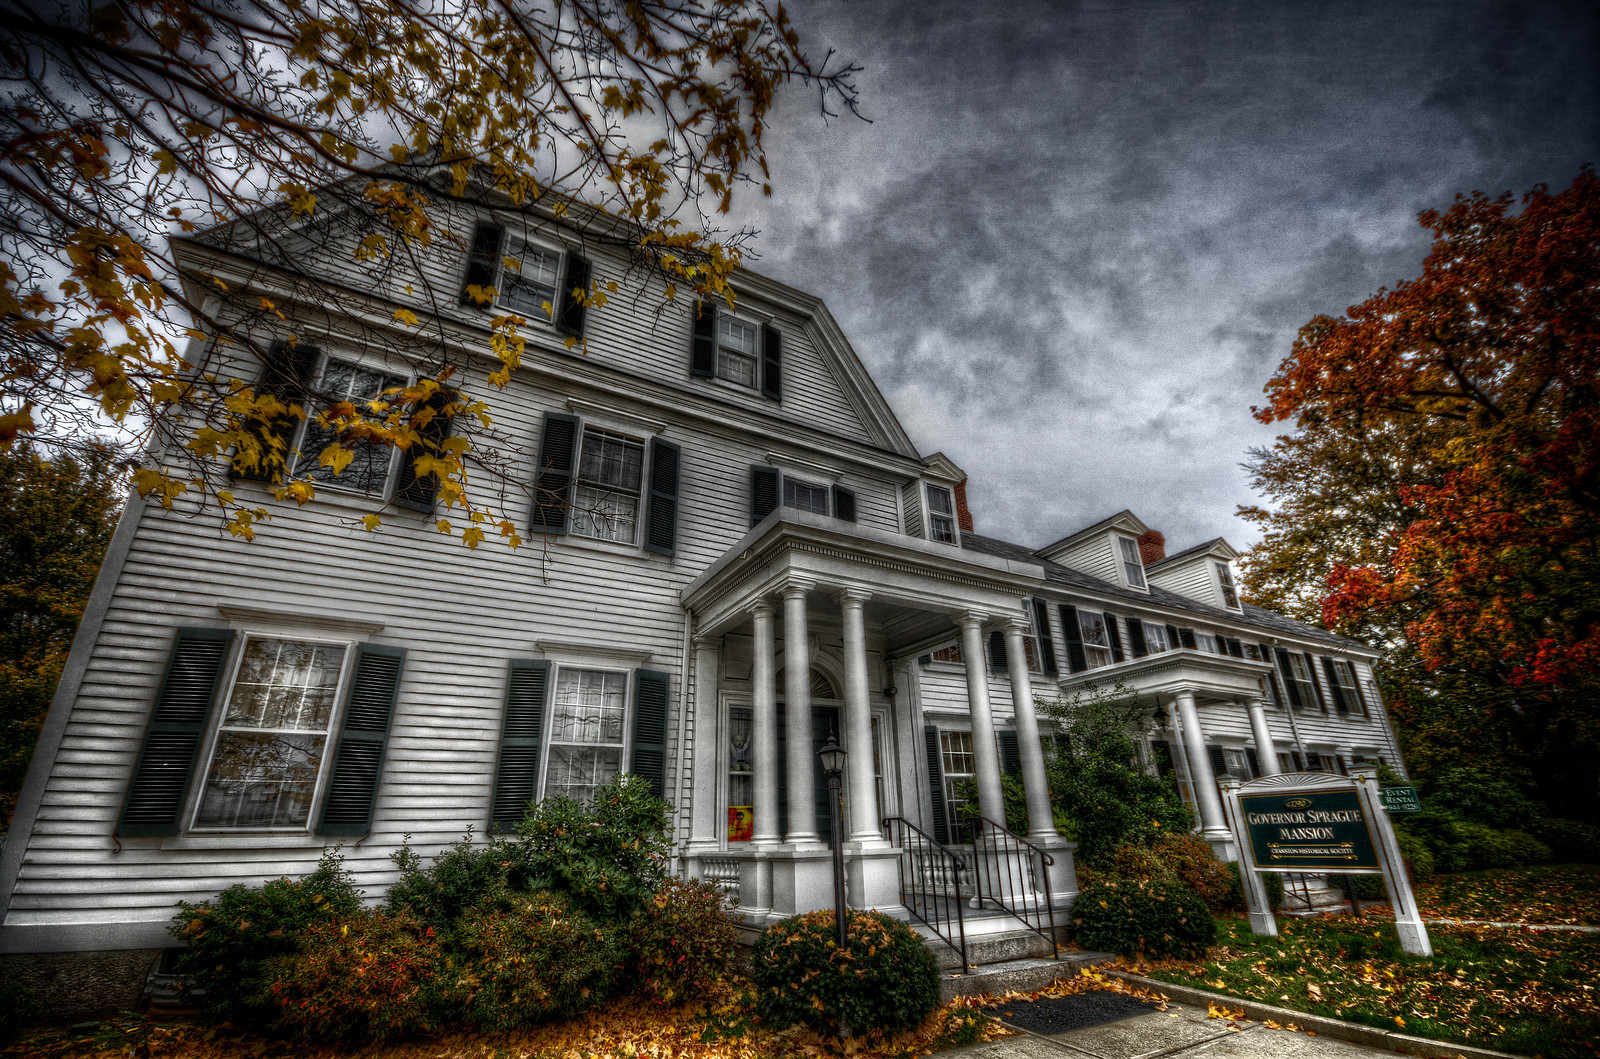 The Governor Sprague Mansion in Cranston, Rhode Island. Photo by Frank Grace.